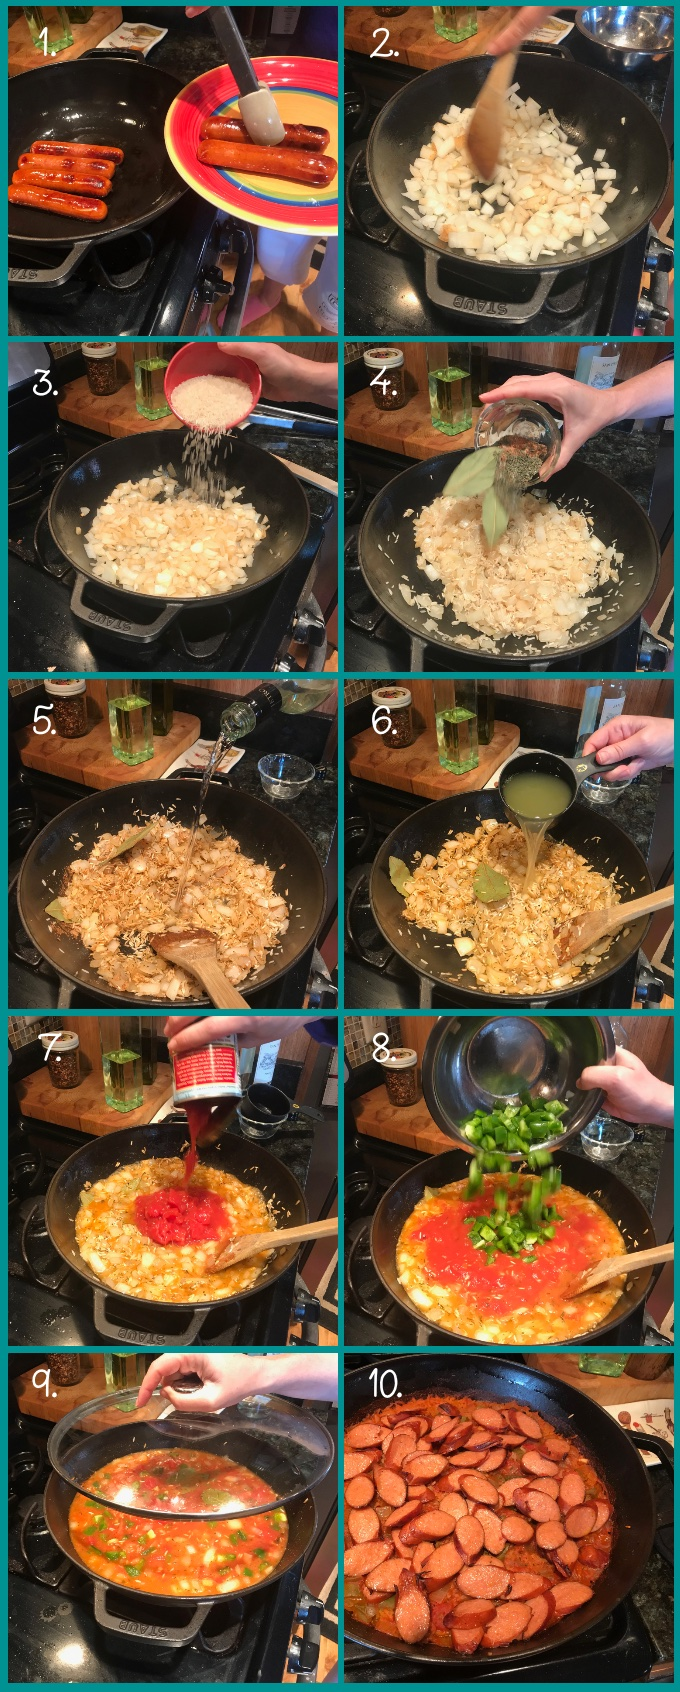 How to make Cajun Sausage-Rice Skillet: (1) Brown the sausages and remove to a plate. (2) Saute the onions until translucent, then (3) add the rice; saute for 2 minutes. (4) Add the herbs and spices; saute for an additional minute. (5) Add the wine over high heat; reduce for 1 minute. (6) Add the chicken broth, followed by the (7) tomatoes and tomato sauce, and finally (8) the bell peppers. (9) Mix, lid, and bake in a 375º oven, undisturbed, for 30 minutes. (9) Remove lid and add sausage; continue baking 10 minutes (uncovered), or until rice is tender.